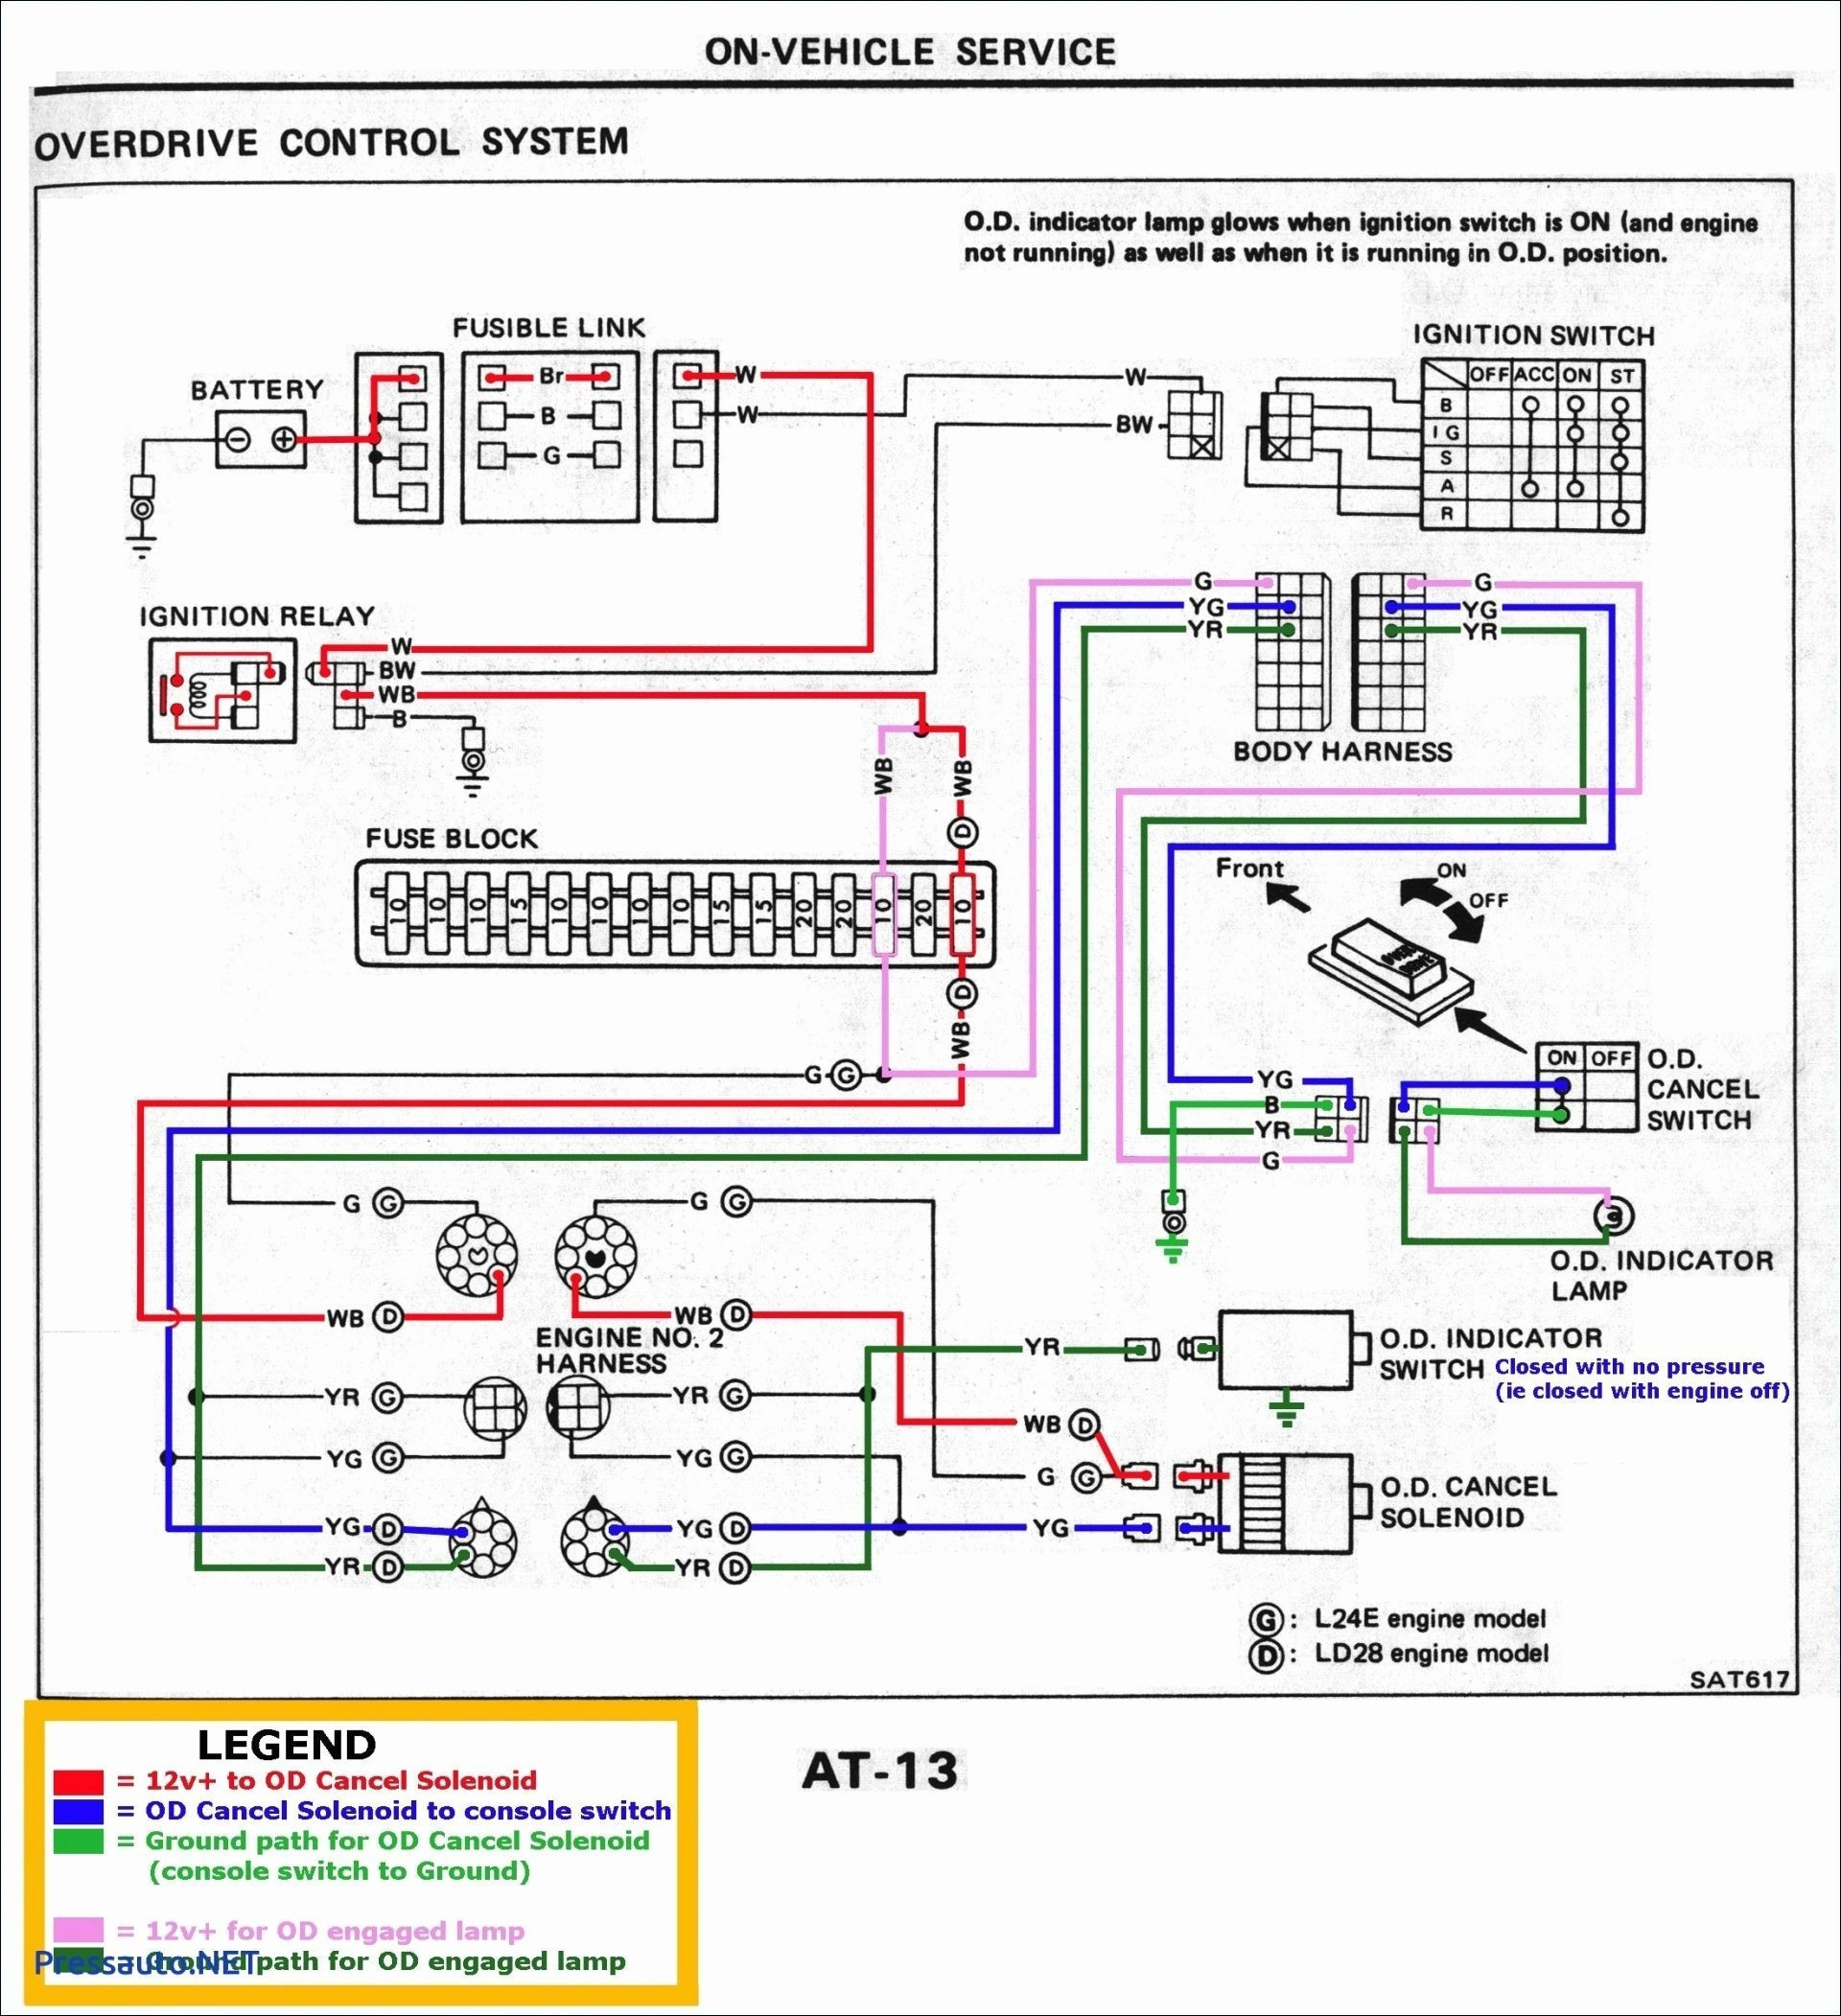 Gas Pump Diagram Gas Furnace Wiring Diagram Valid Best Suburban Gas Furnace Wiring Of Gas Pump Diagram Switch Wiring Diagram Gallery